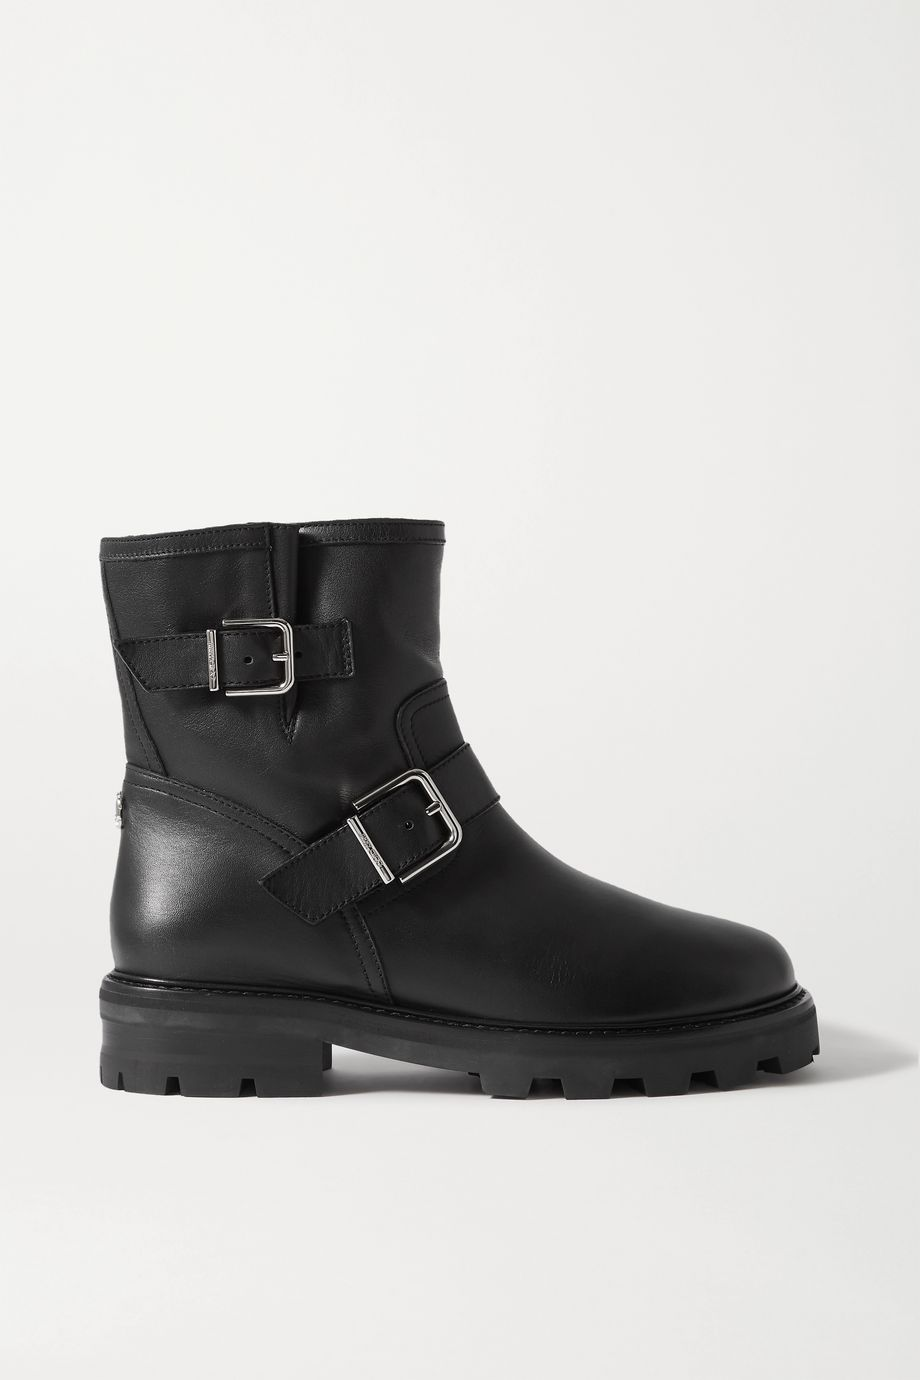 Jimmy Choo Youth II buckled leather shearling biker boots